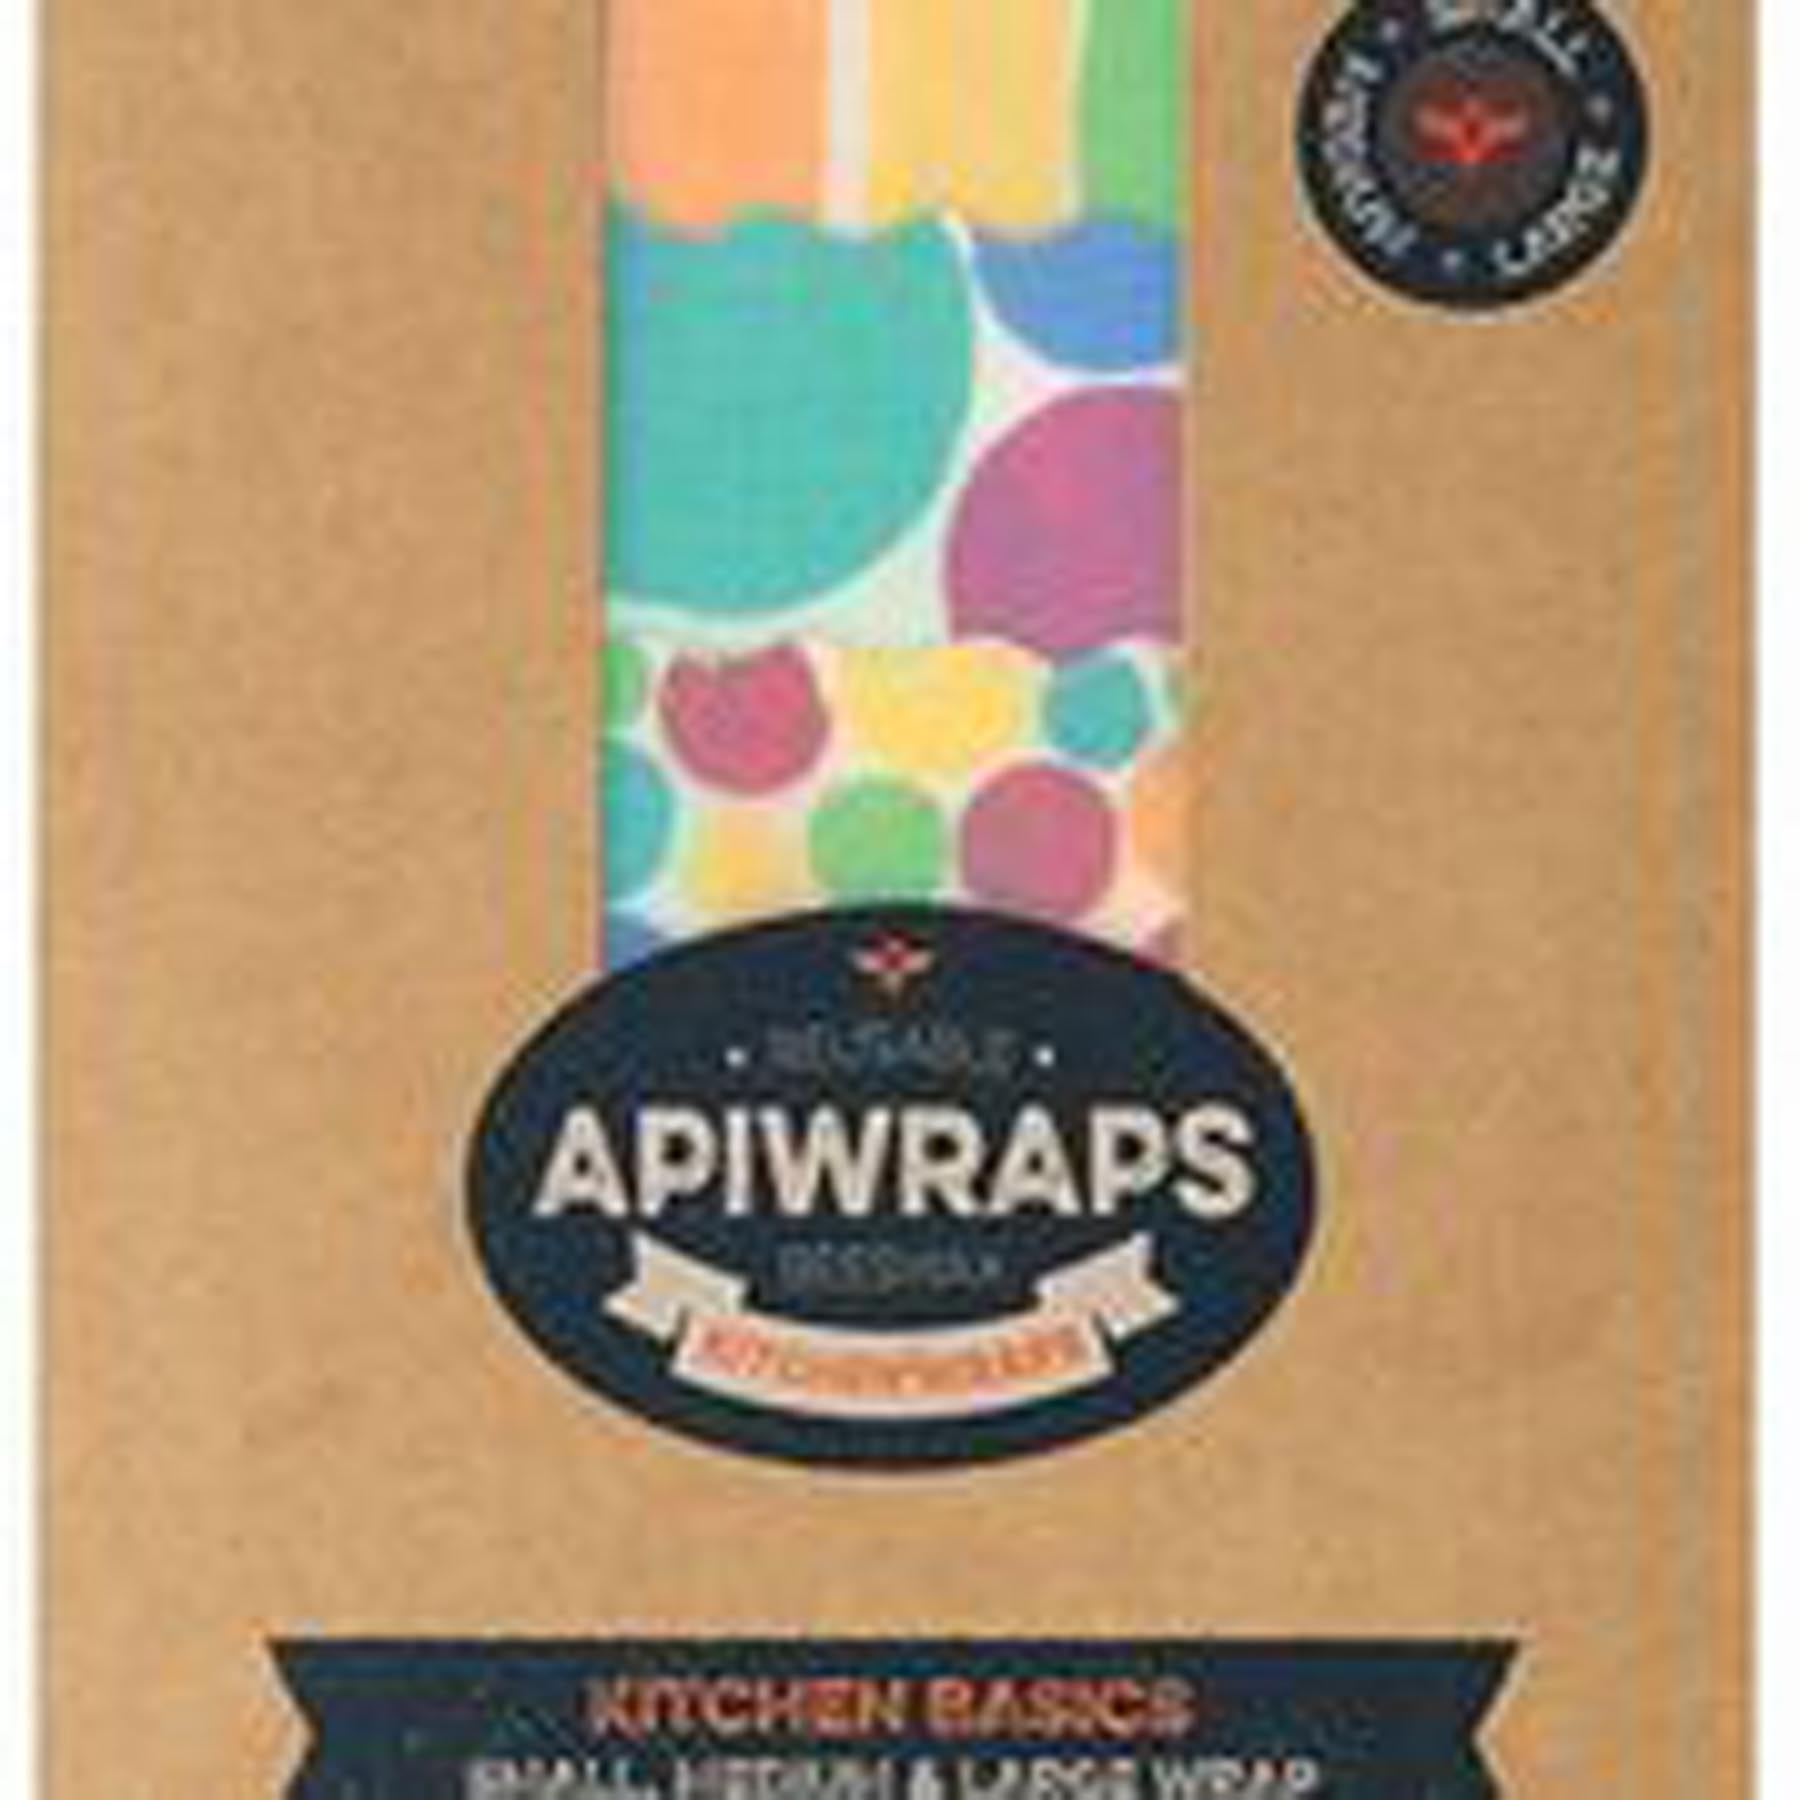 APIWRAPS REUSABLE BEESWAX WRAPS 3 PACK www.motherbynature.com.au